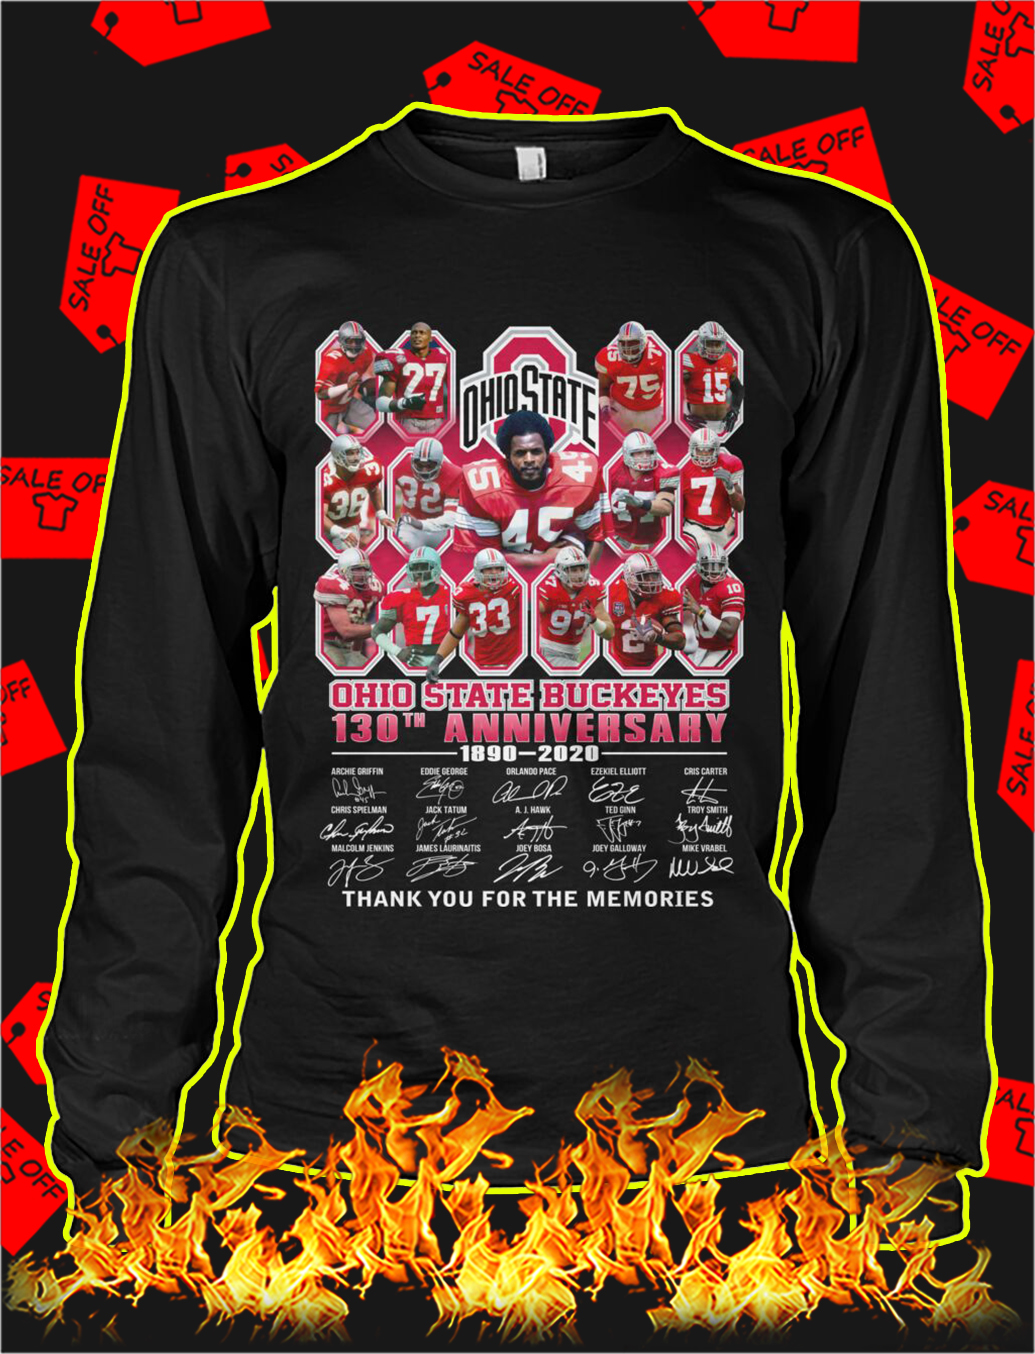 Ohio state buckeyes 130th anniversary thank you for the memories longsleeve tee